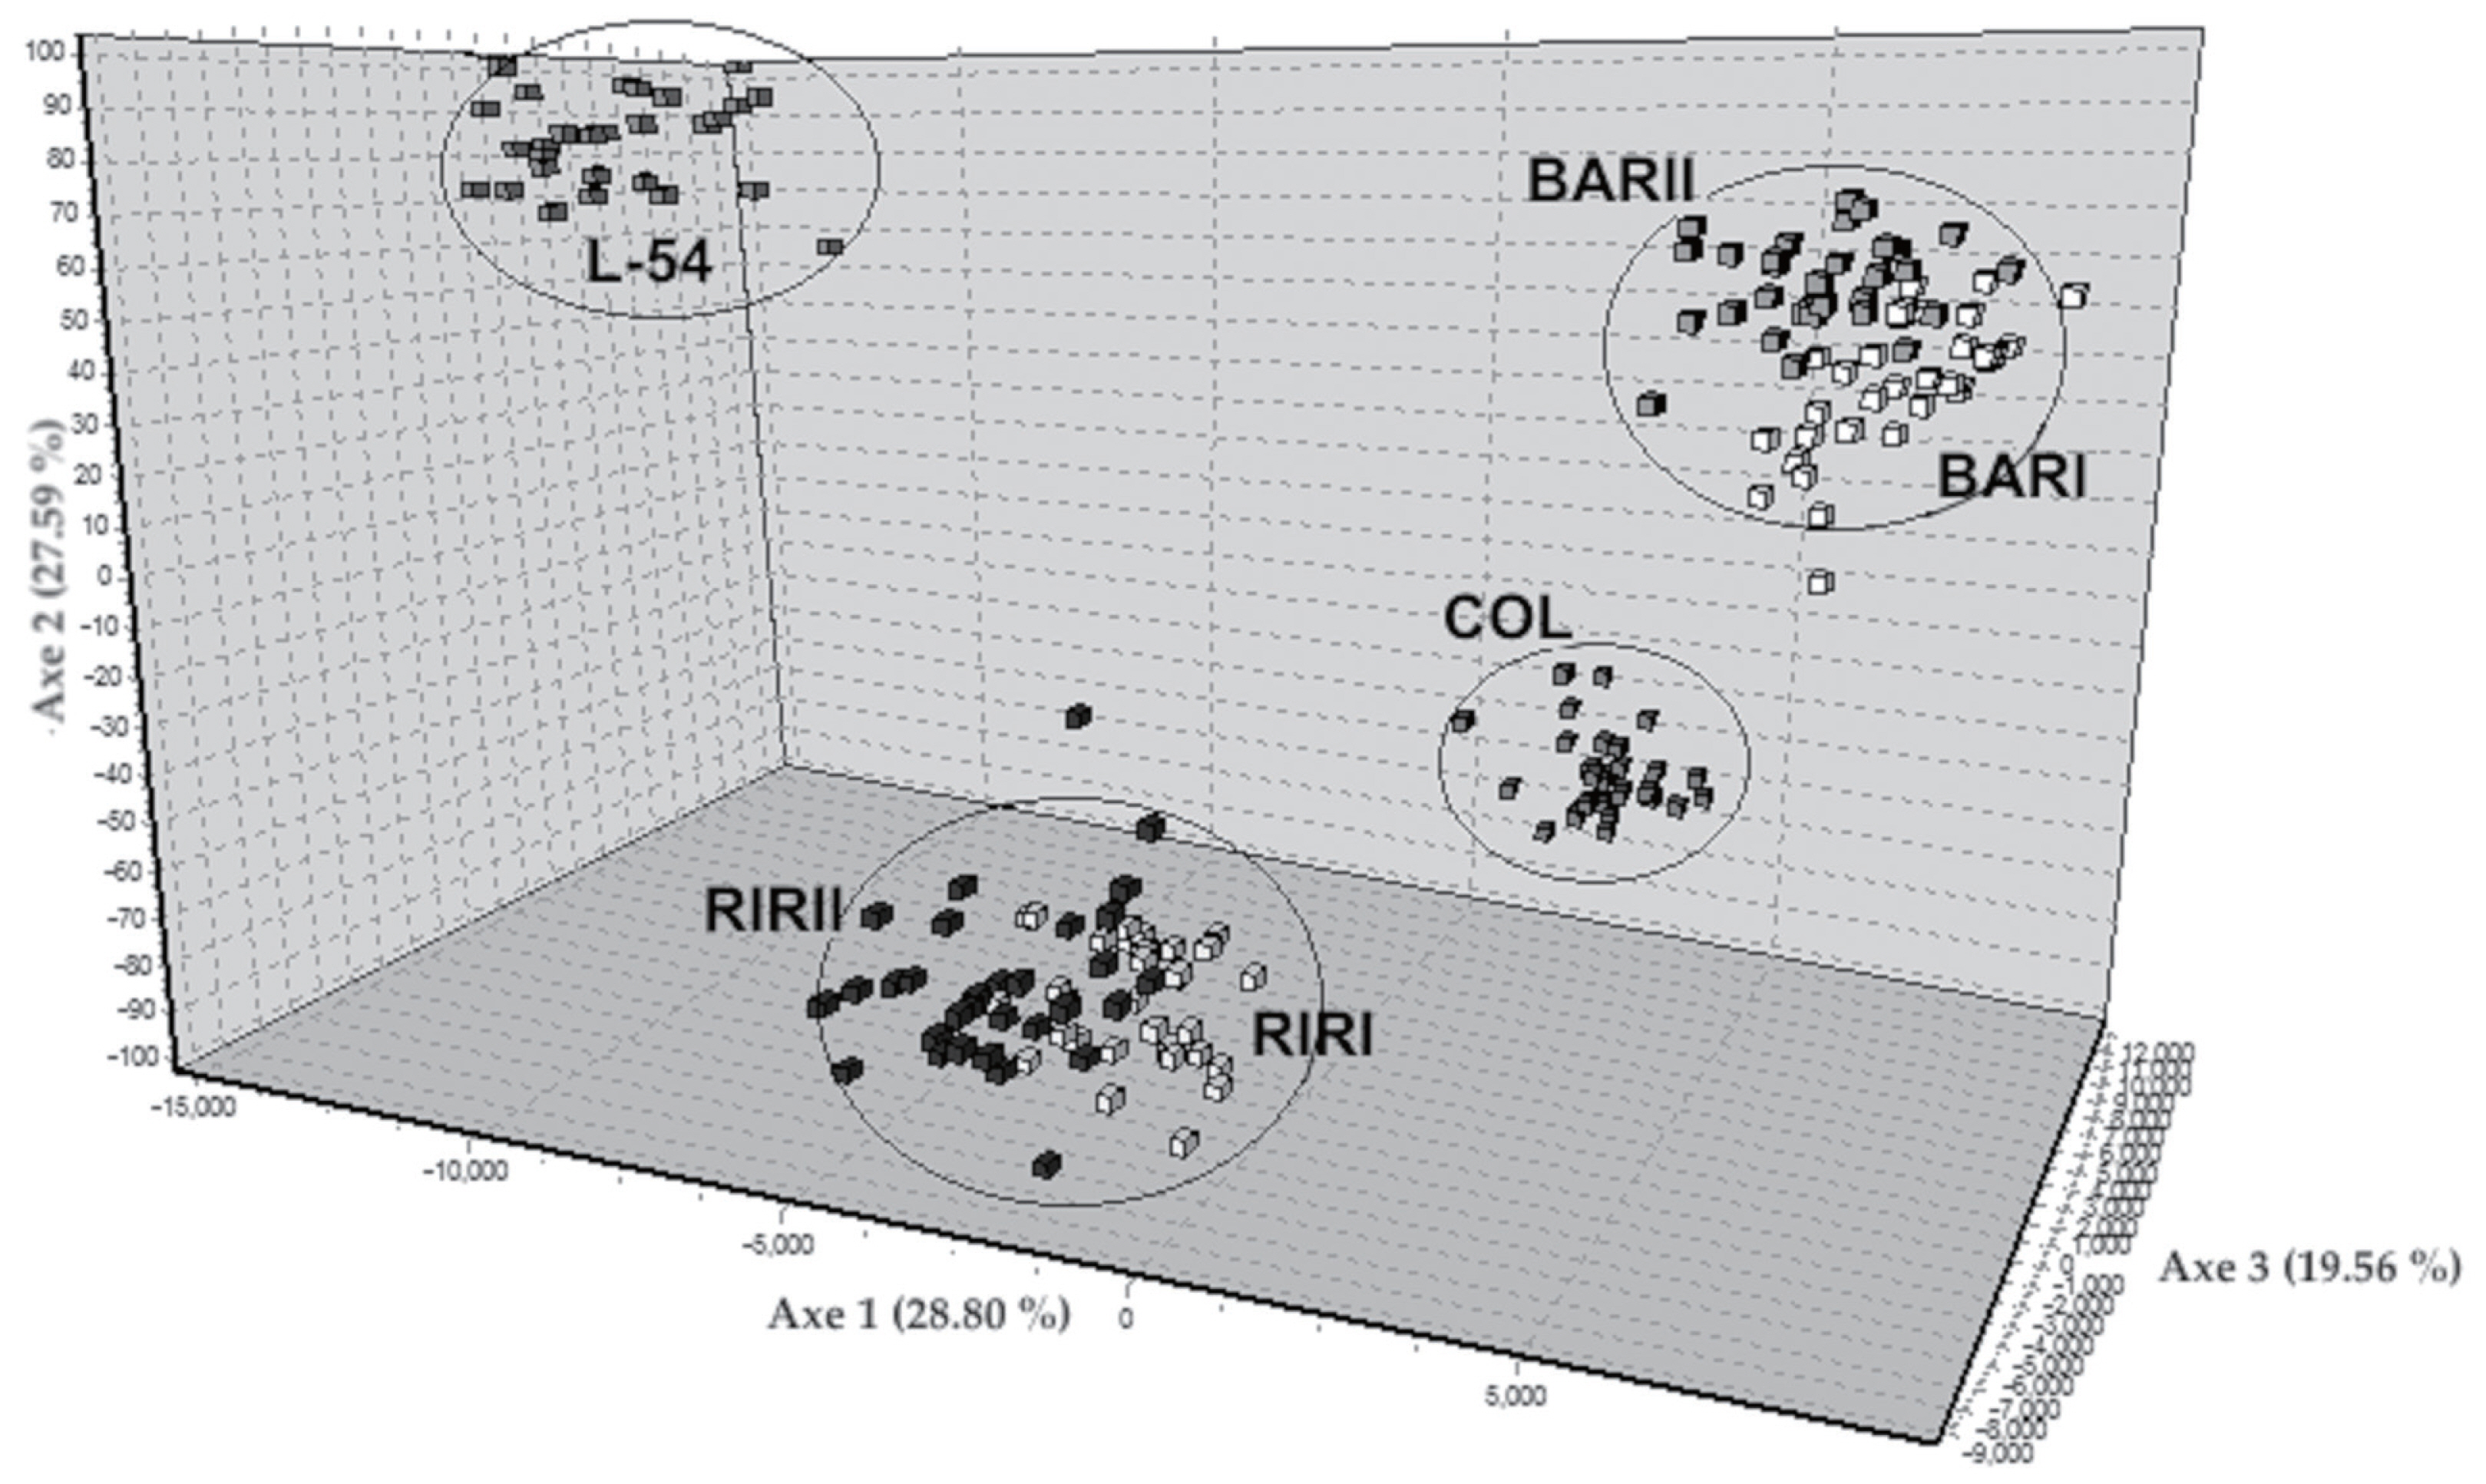 Genetic characterization and population structure of six